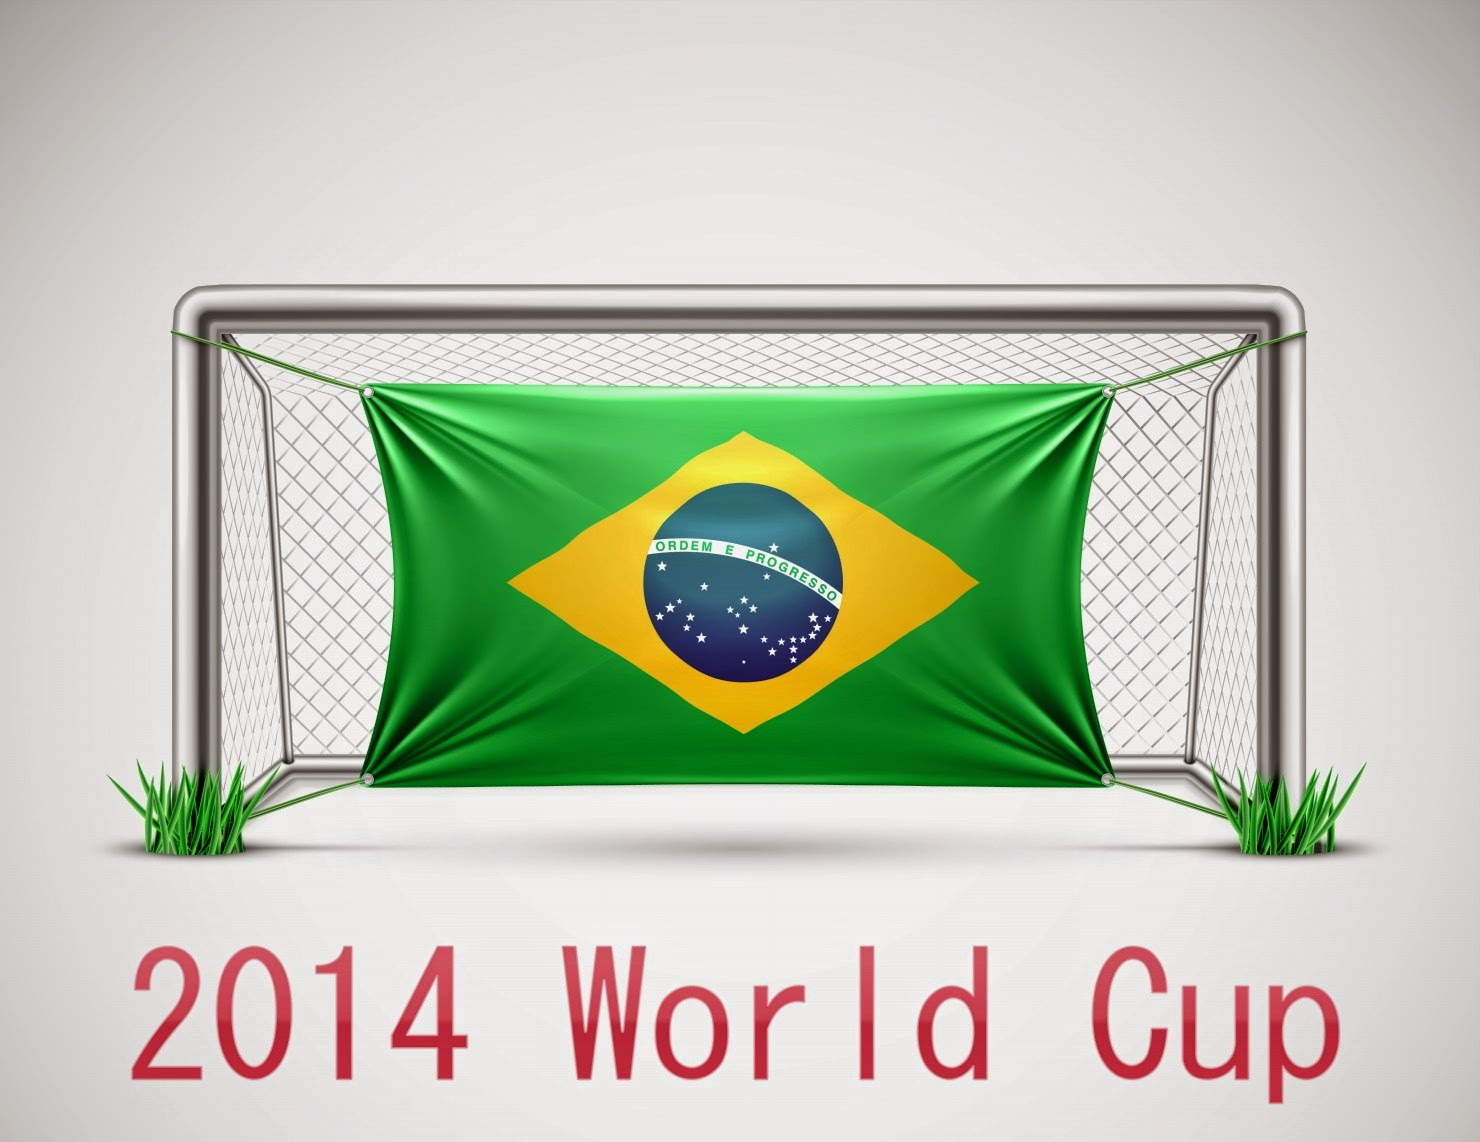 Designs for the 2014 World Cup Groups.